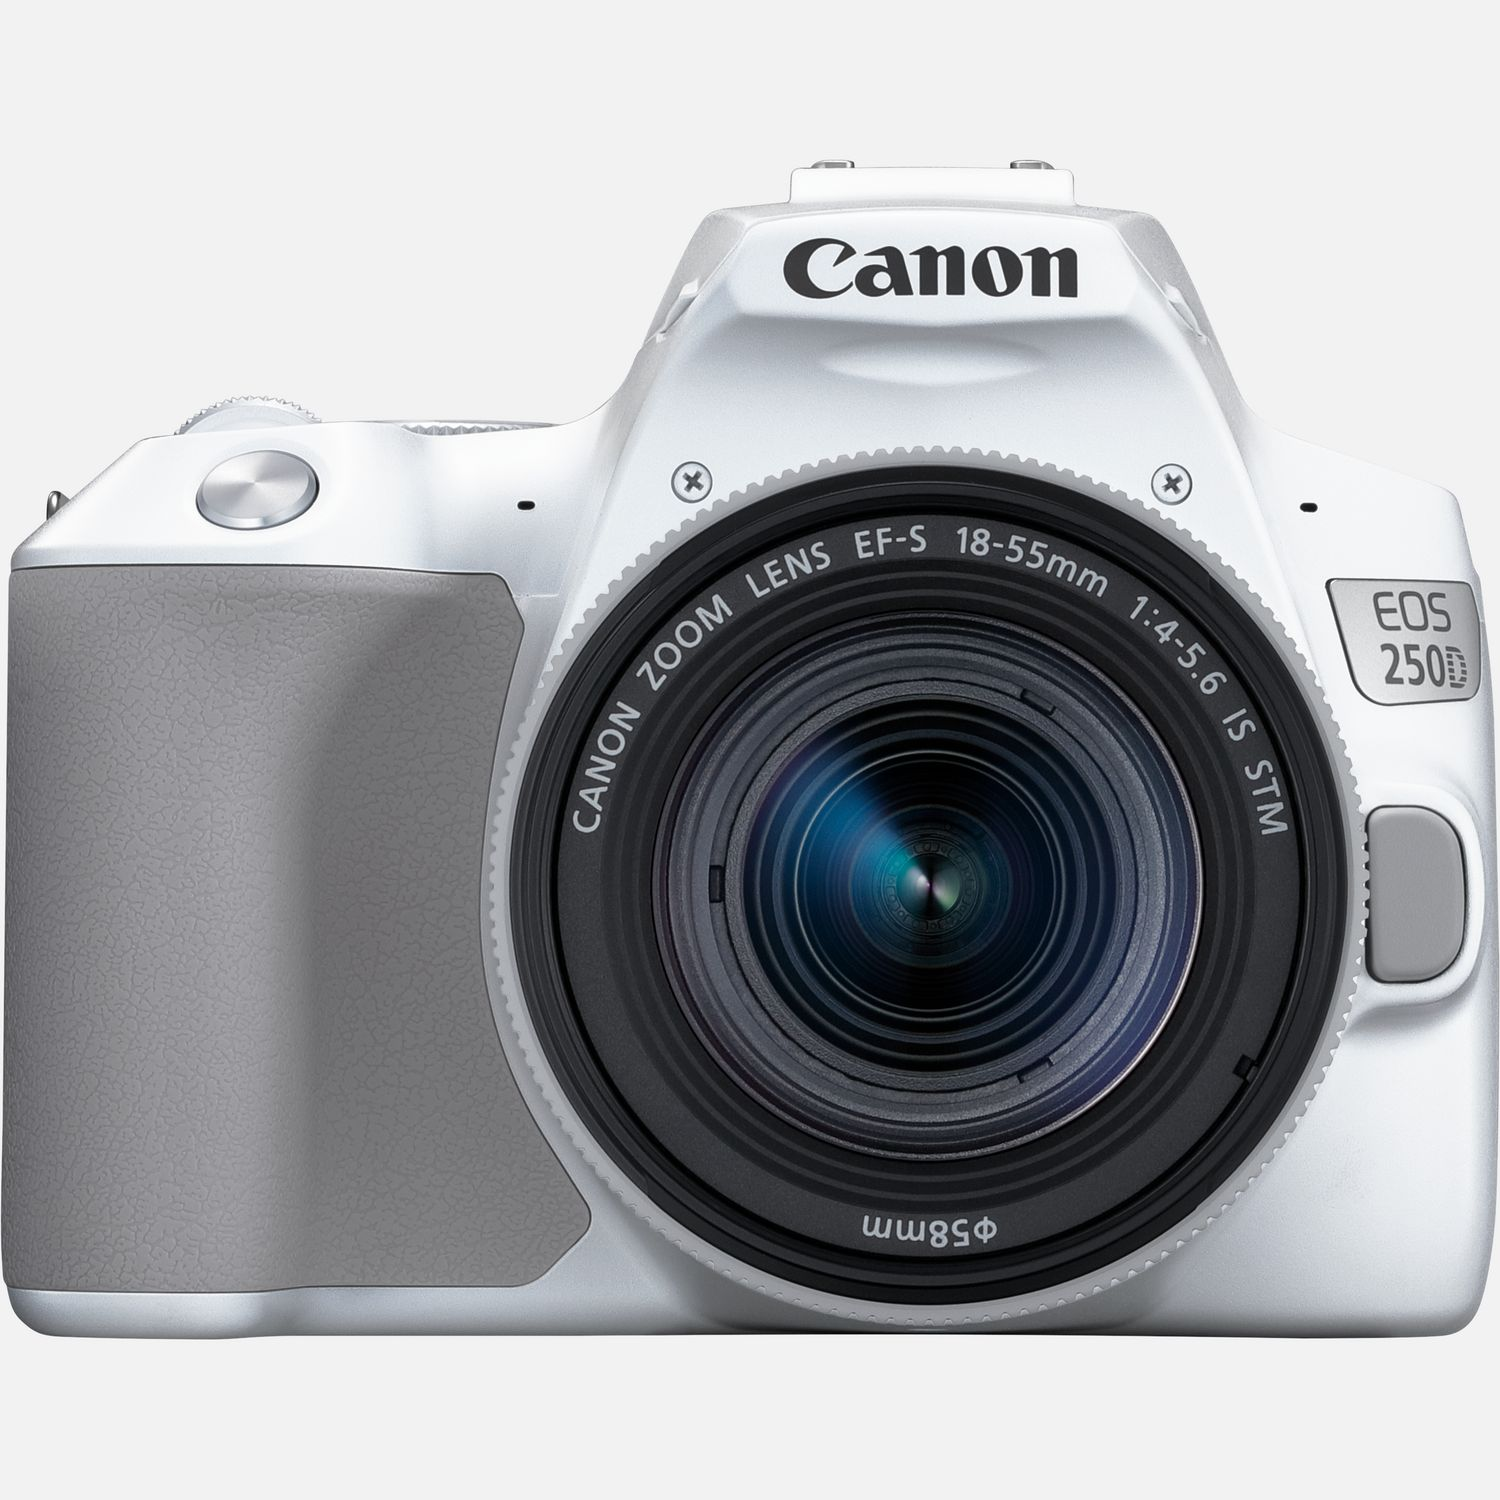 Image of Canon EOS 250D, White and EF-S 18-55mm f/4-5.6 IS STM Lens